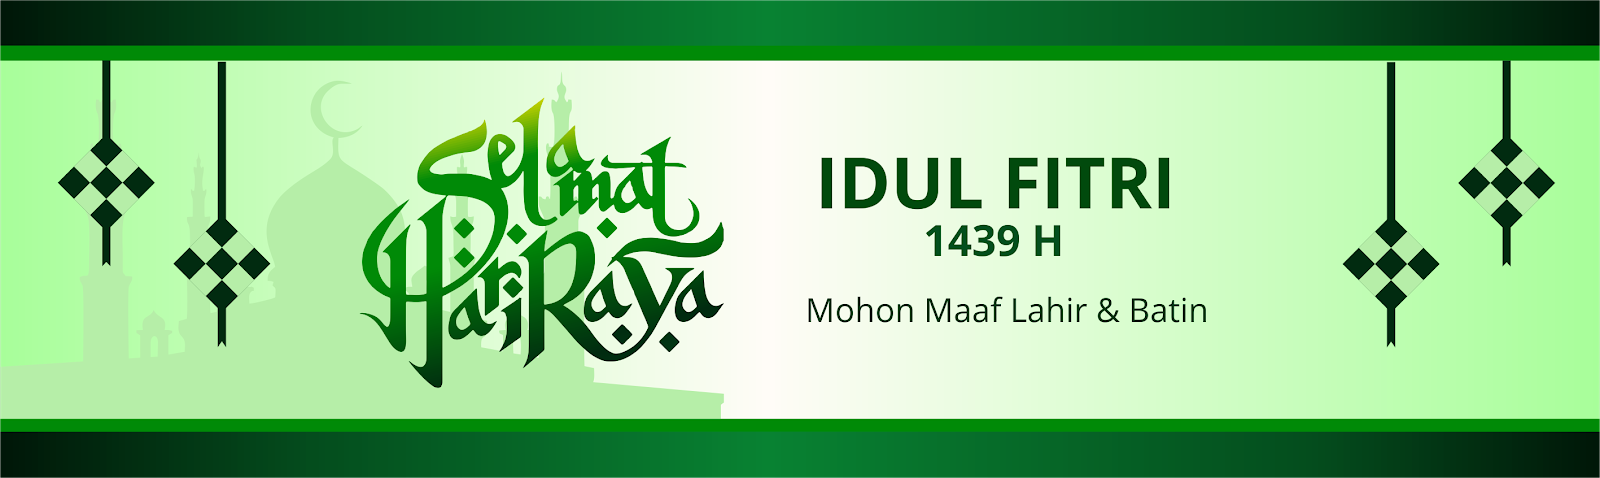 contoh banner idul fitri cdr